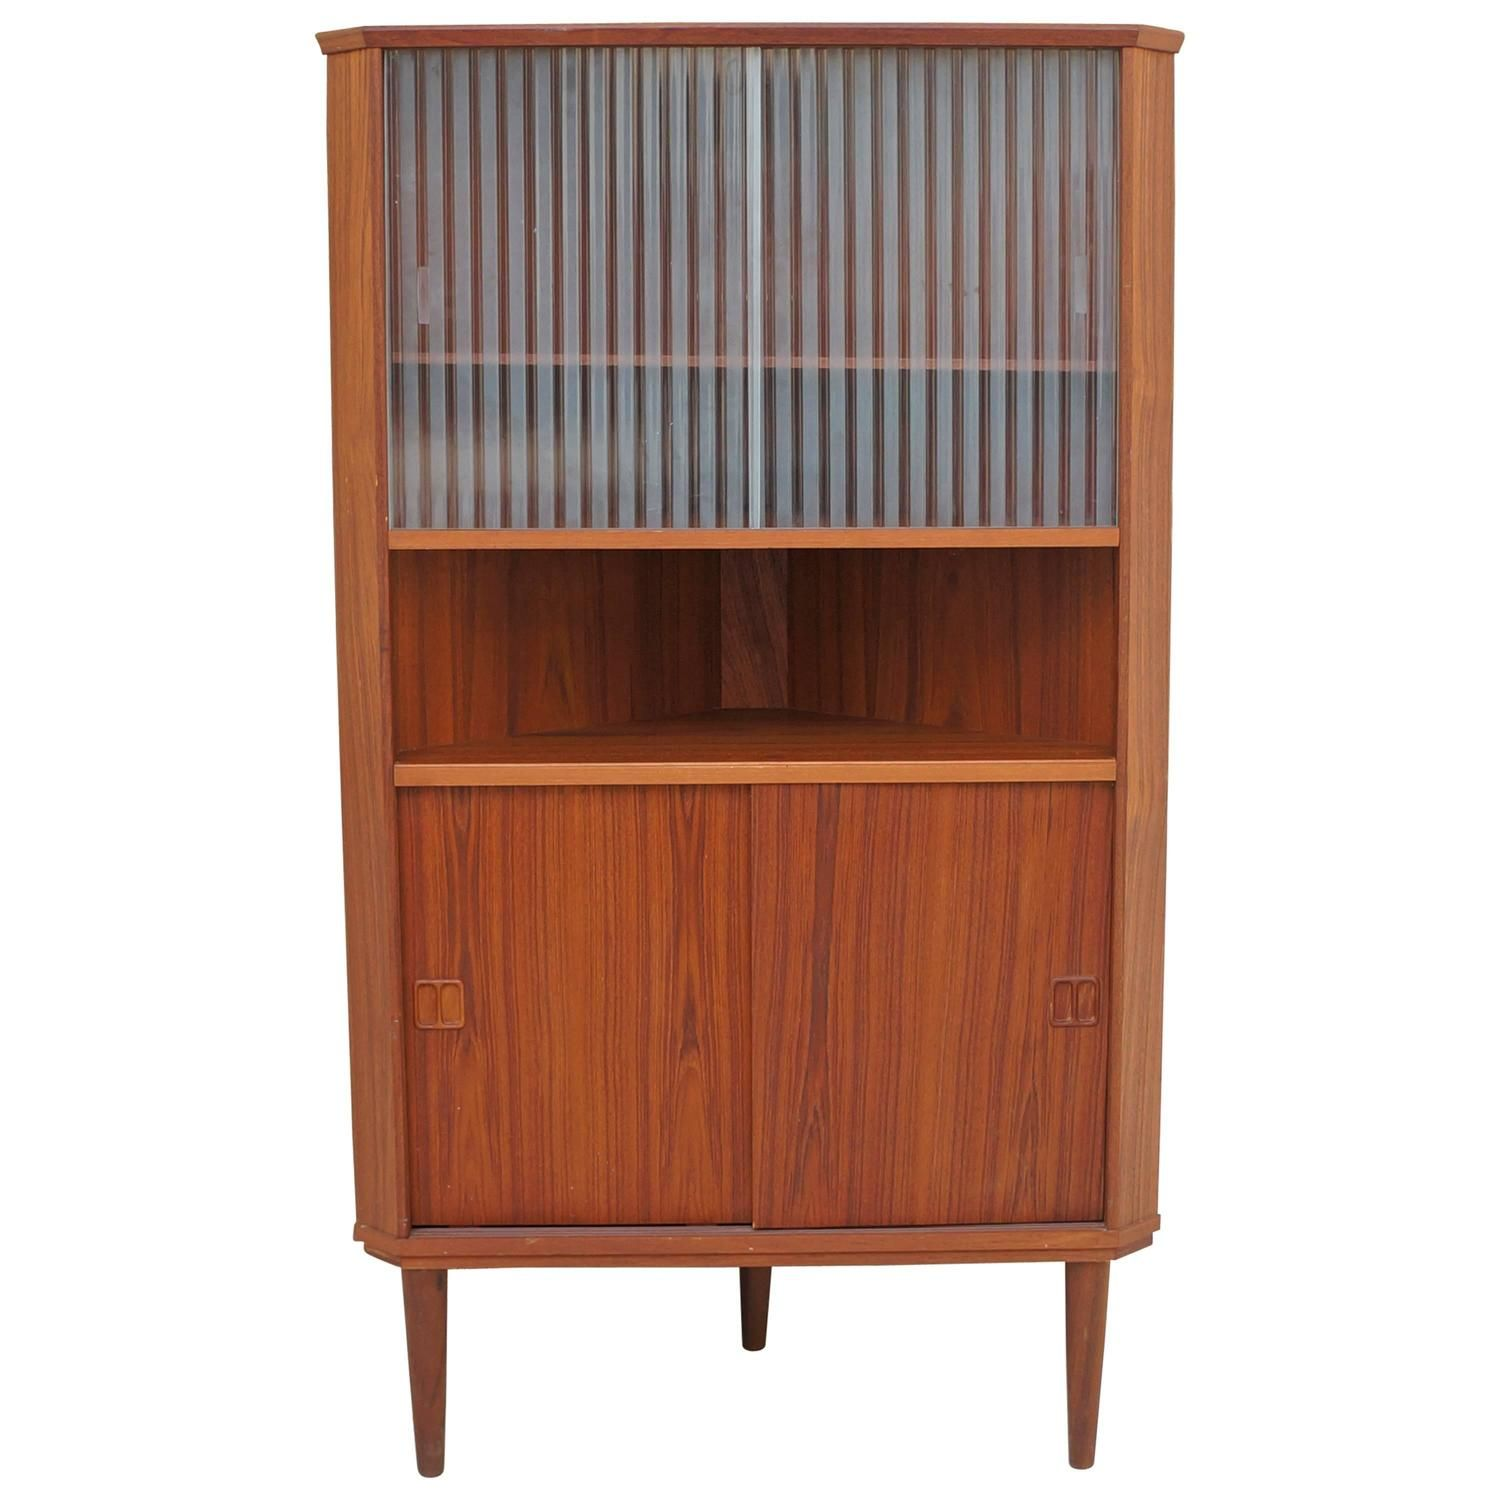 521 Danish Modern Teak Wooden With Glass Corner Cupboard Credenza,